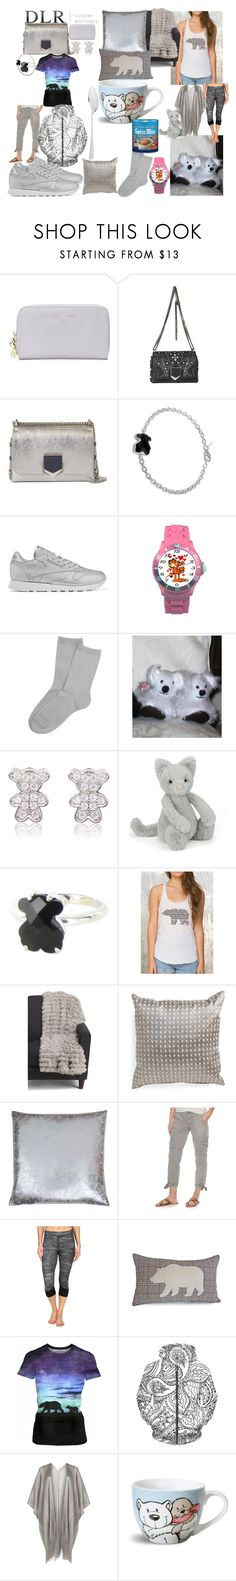 """""""DLR bears"""" by lerp ❤ liked on Polyvore featuring Jimmy Choo, TOUS, Reebok, Jellycat, SONOMA Goods for Life, adidas, Voulez Vous and Carrs"""